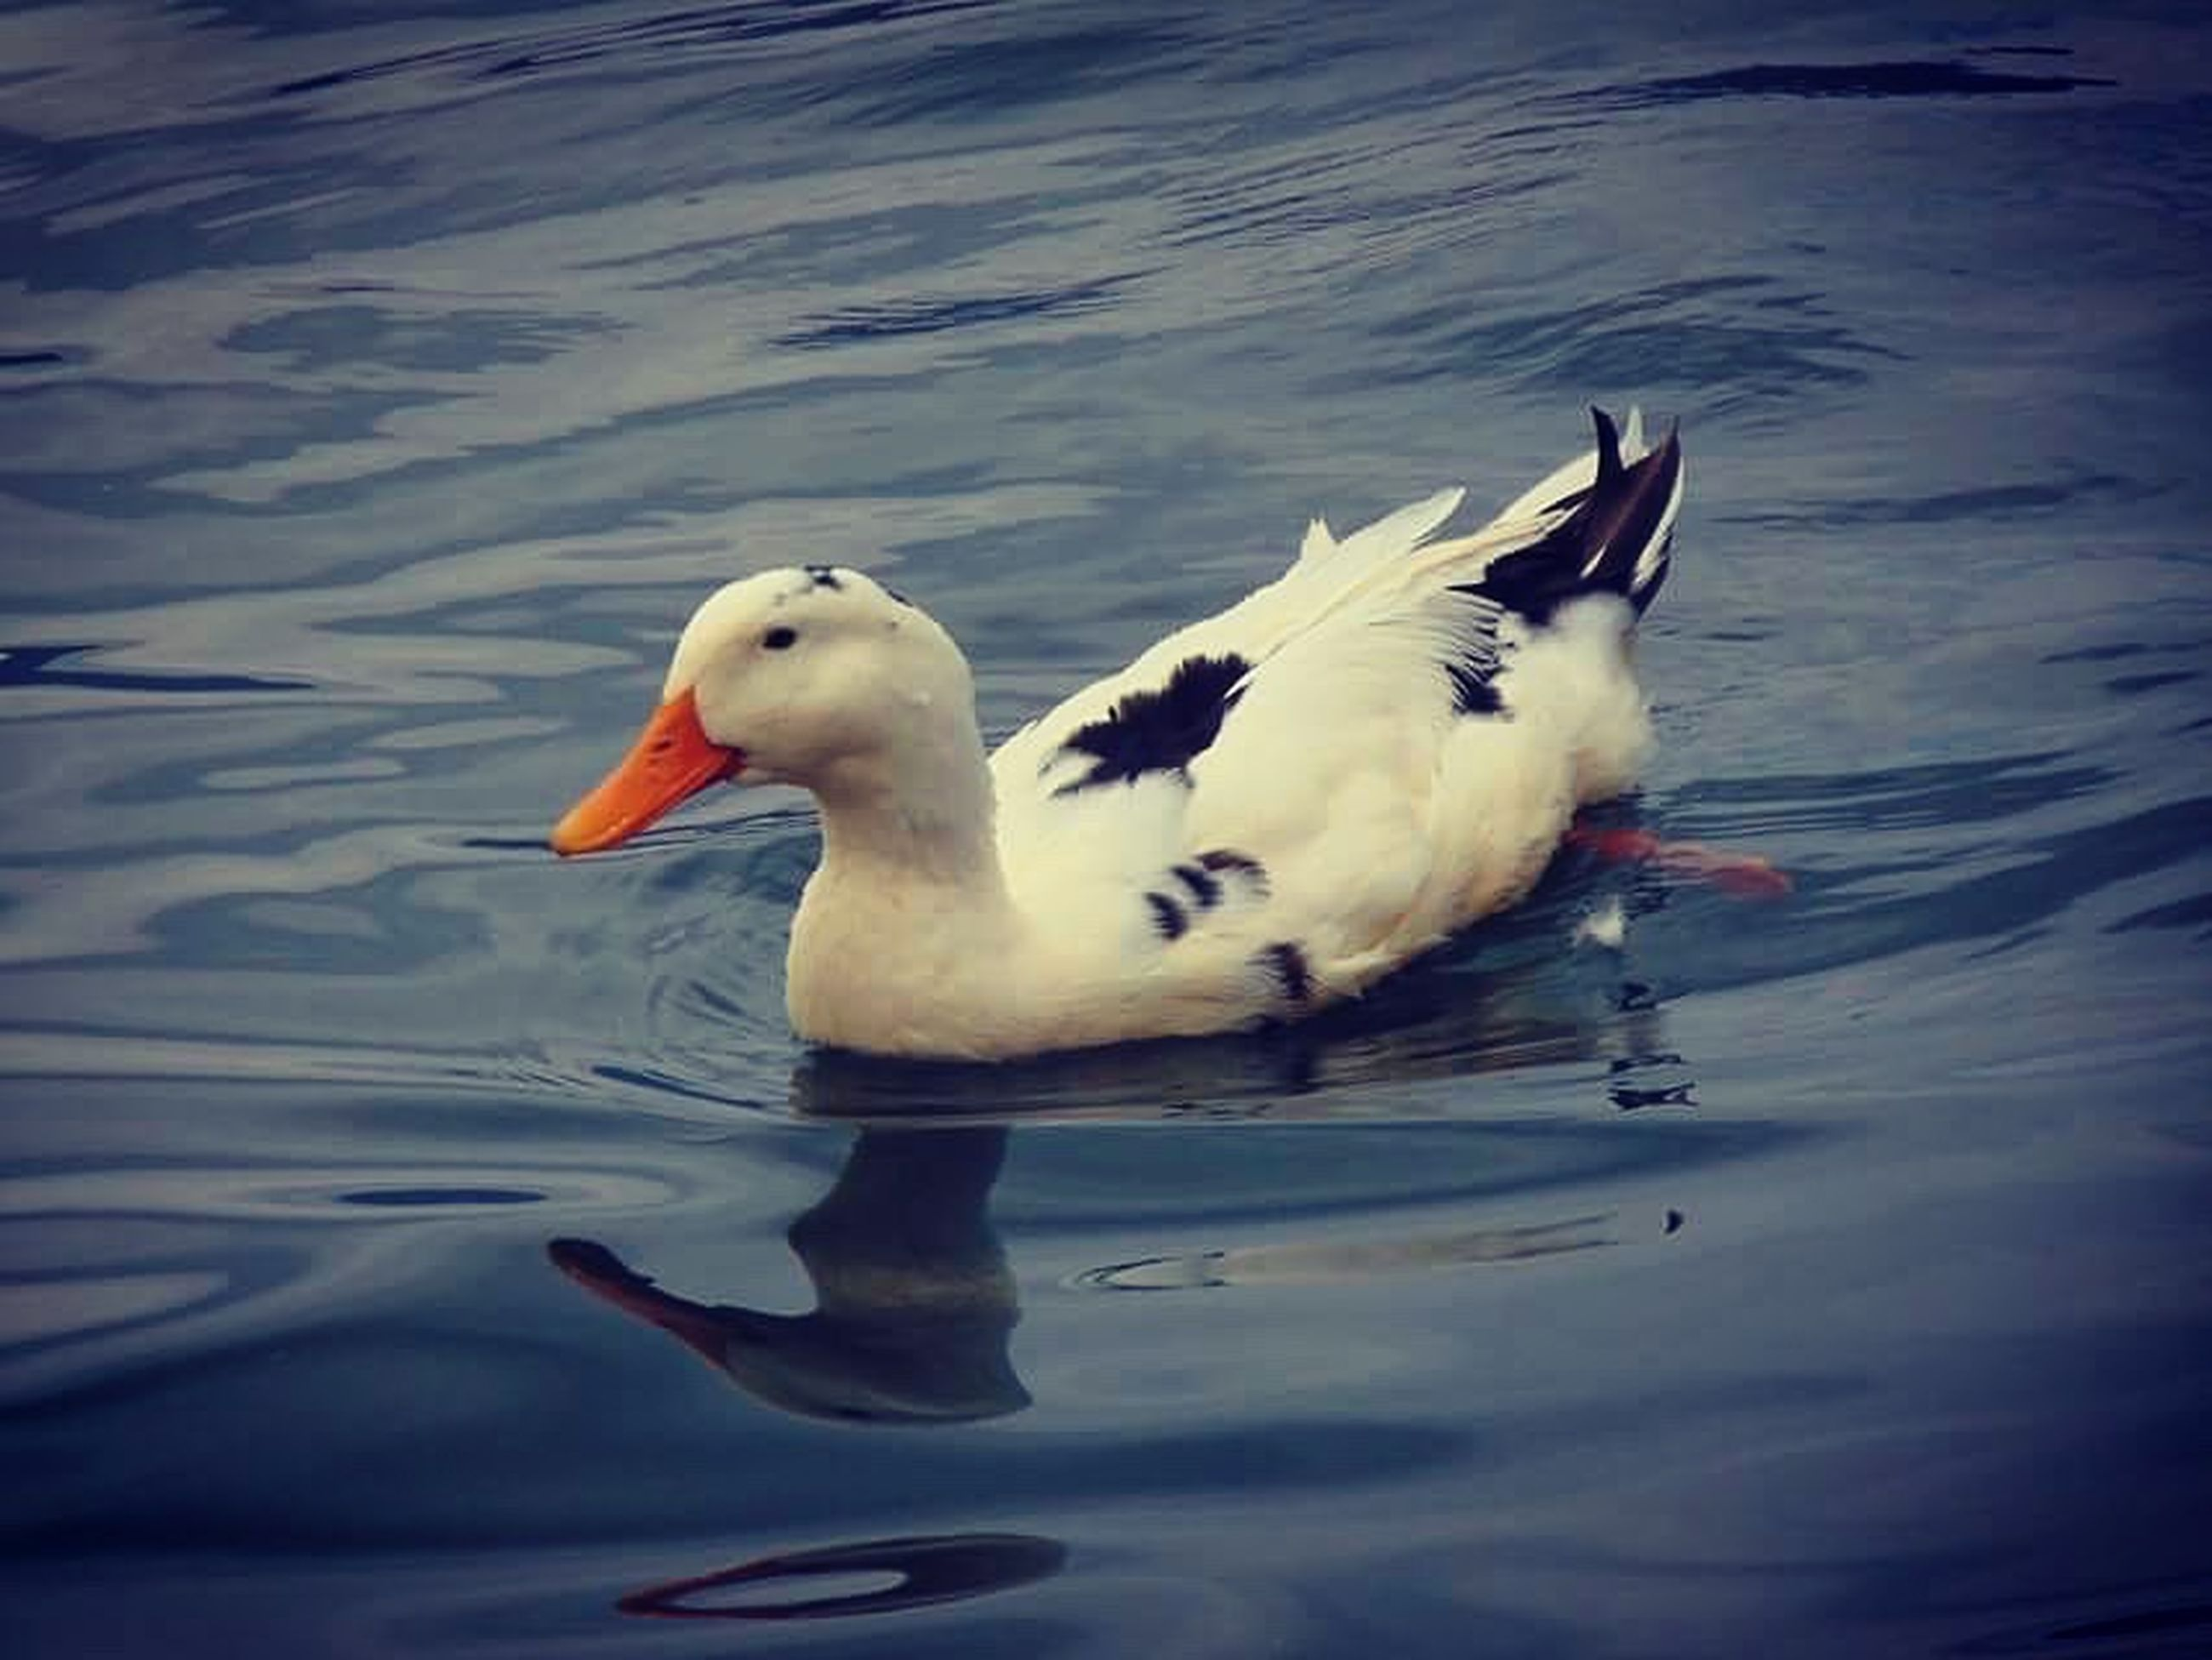 bird, animal themes, water, lake, animals in the wild, one animal, swimming, nature, animal wildlife, no people, day, swan, outdoors, beauty in nature, close-up